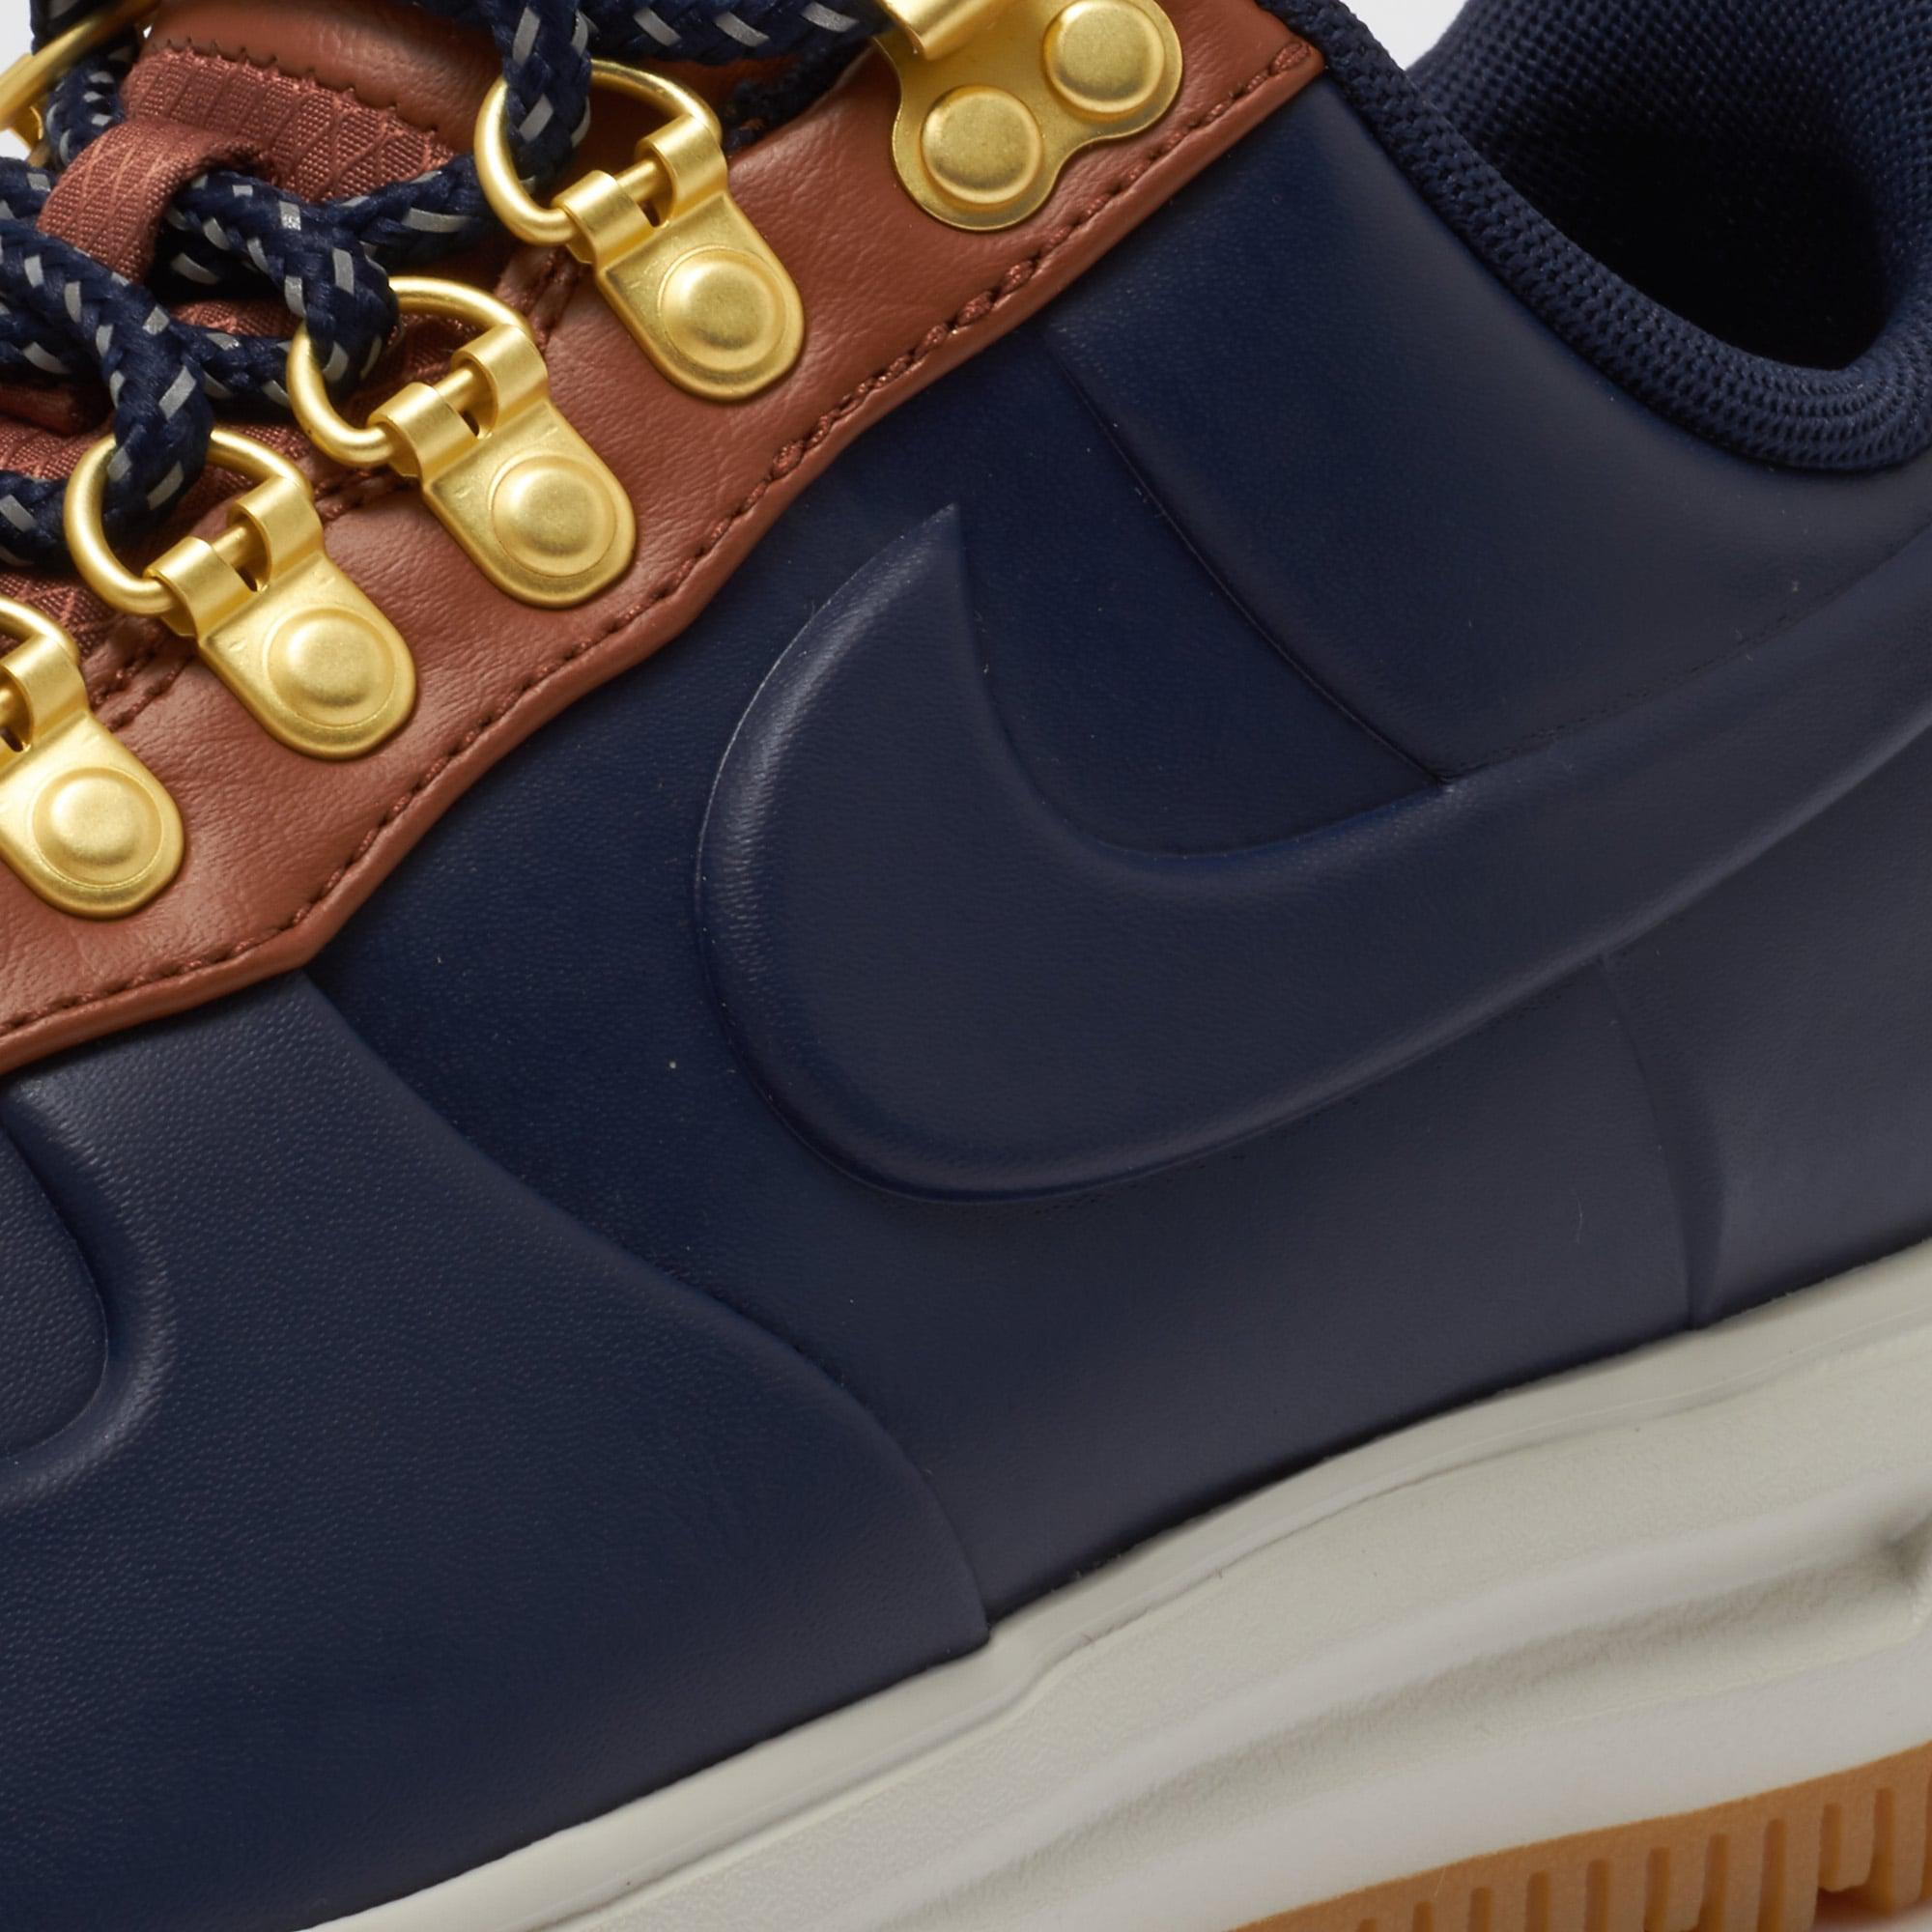 71e8a1e70654 Lyst - Nike Lunar Force 1 Duckboot Low - Obsidian   Saddle Brown in ...